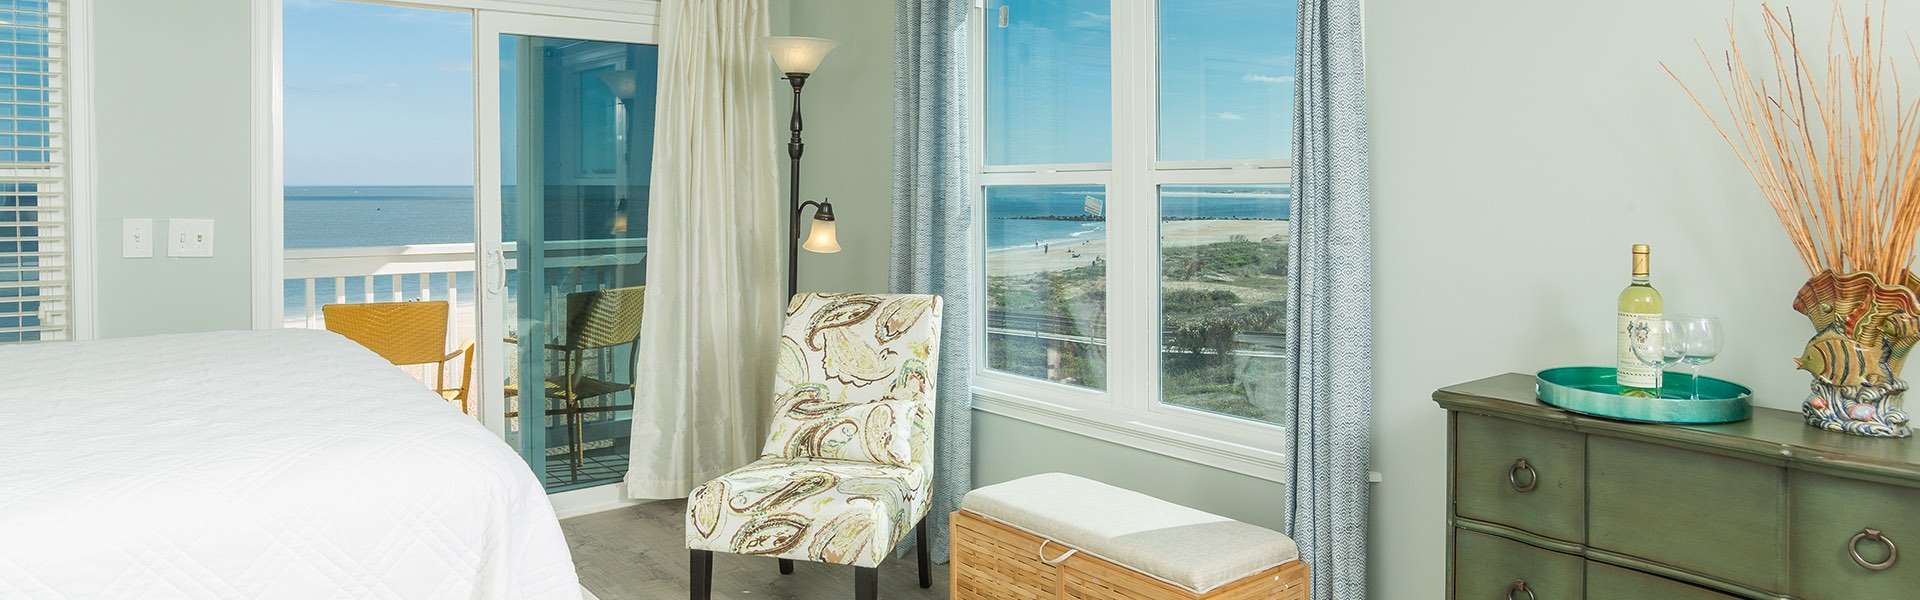 Room with chair next to private balcony with ocean view